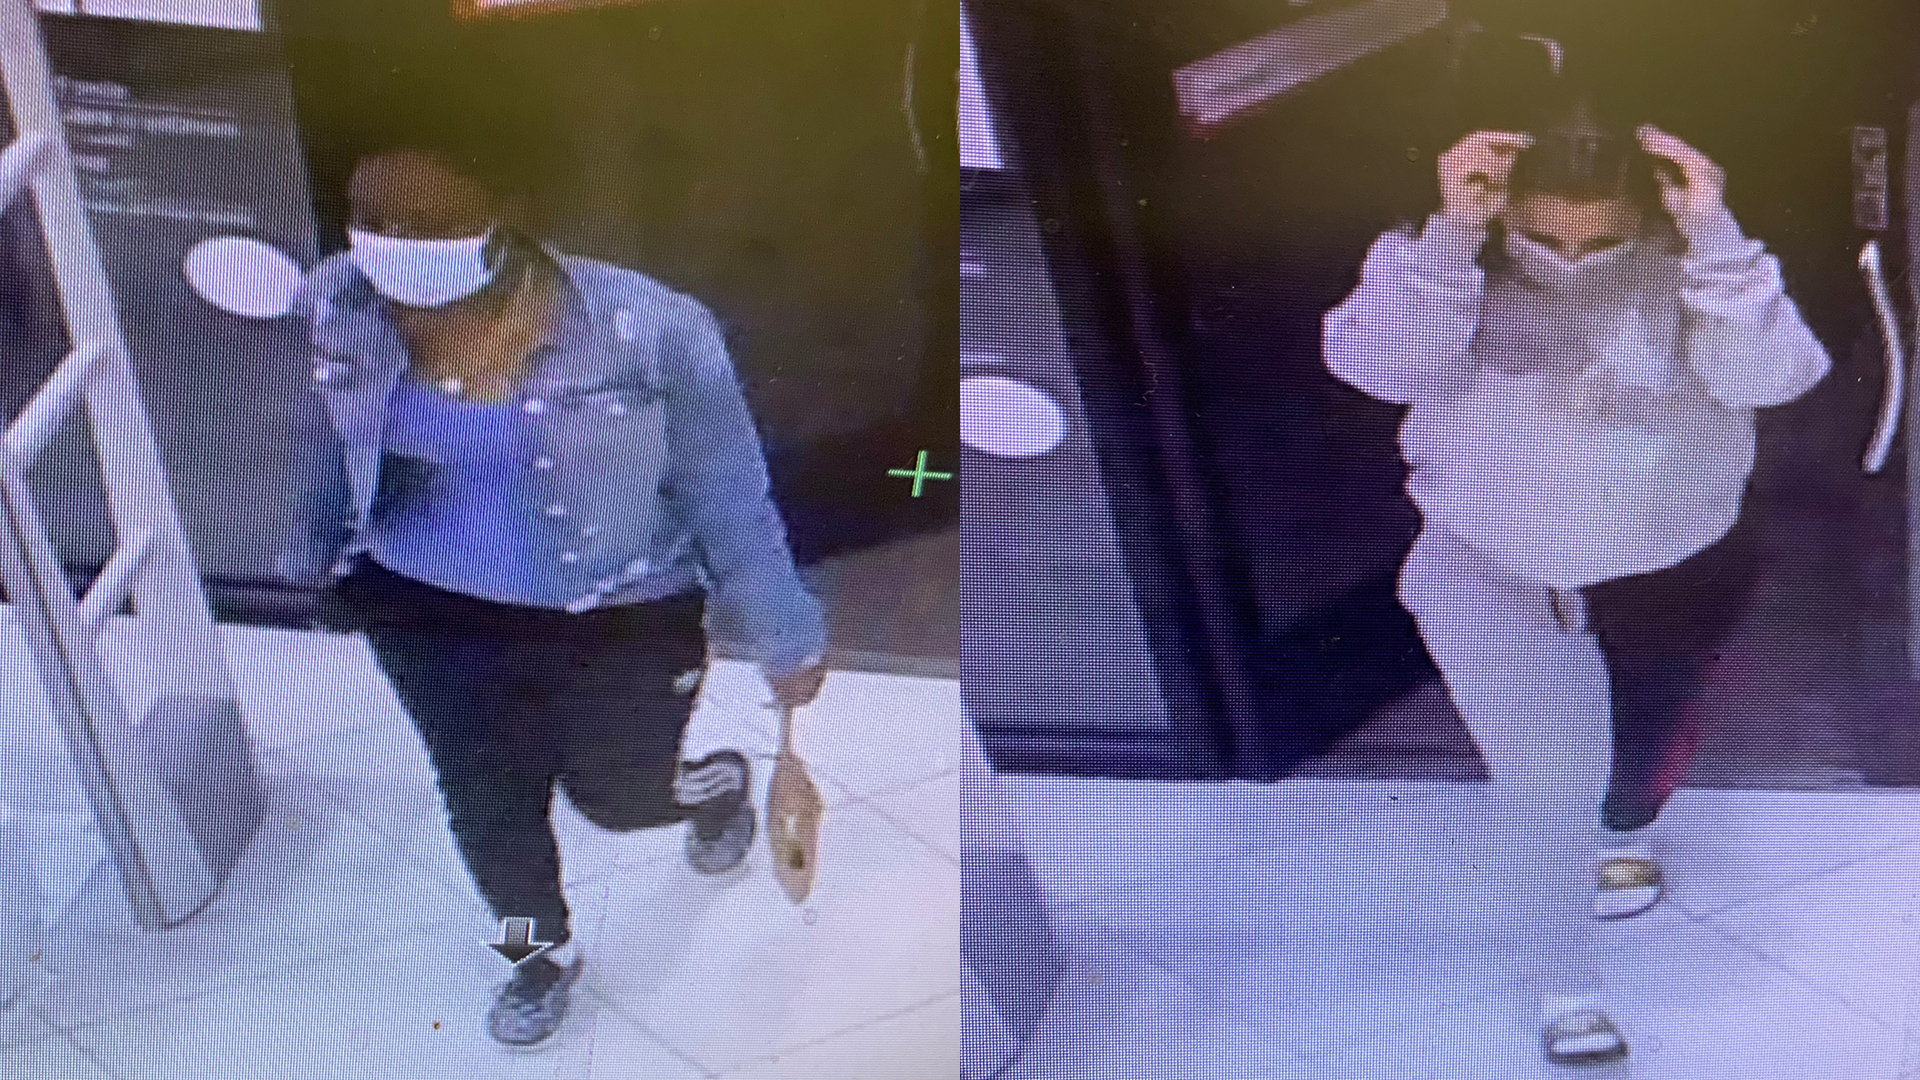 2 women steal $5K worth of Ulta products, escape arrest, Fresno Police say